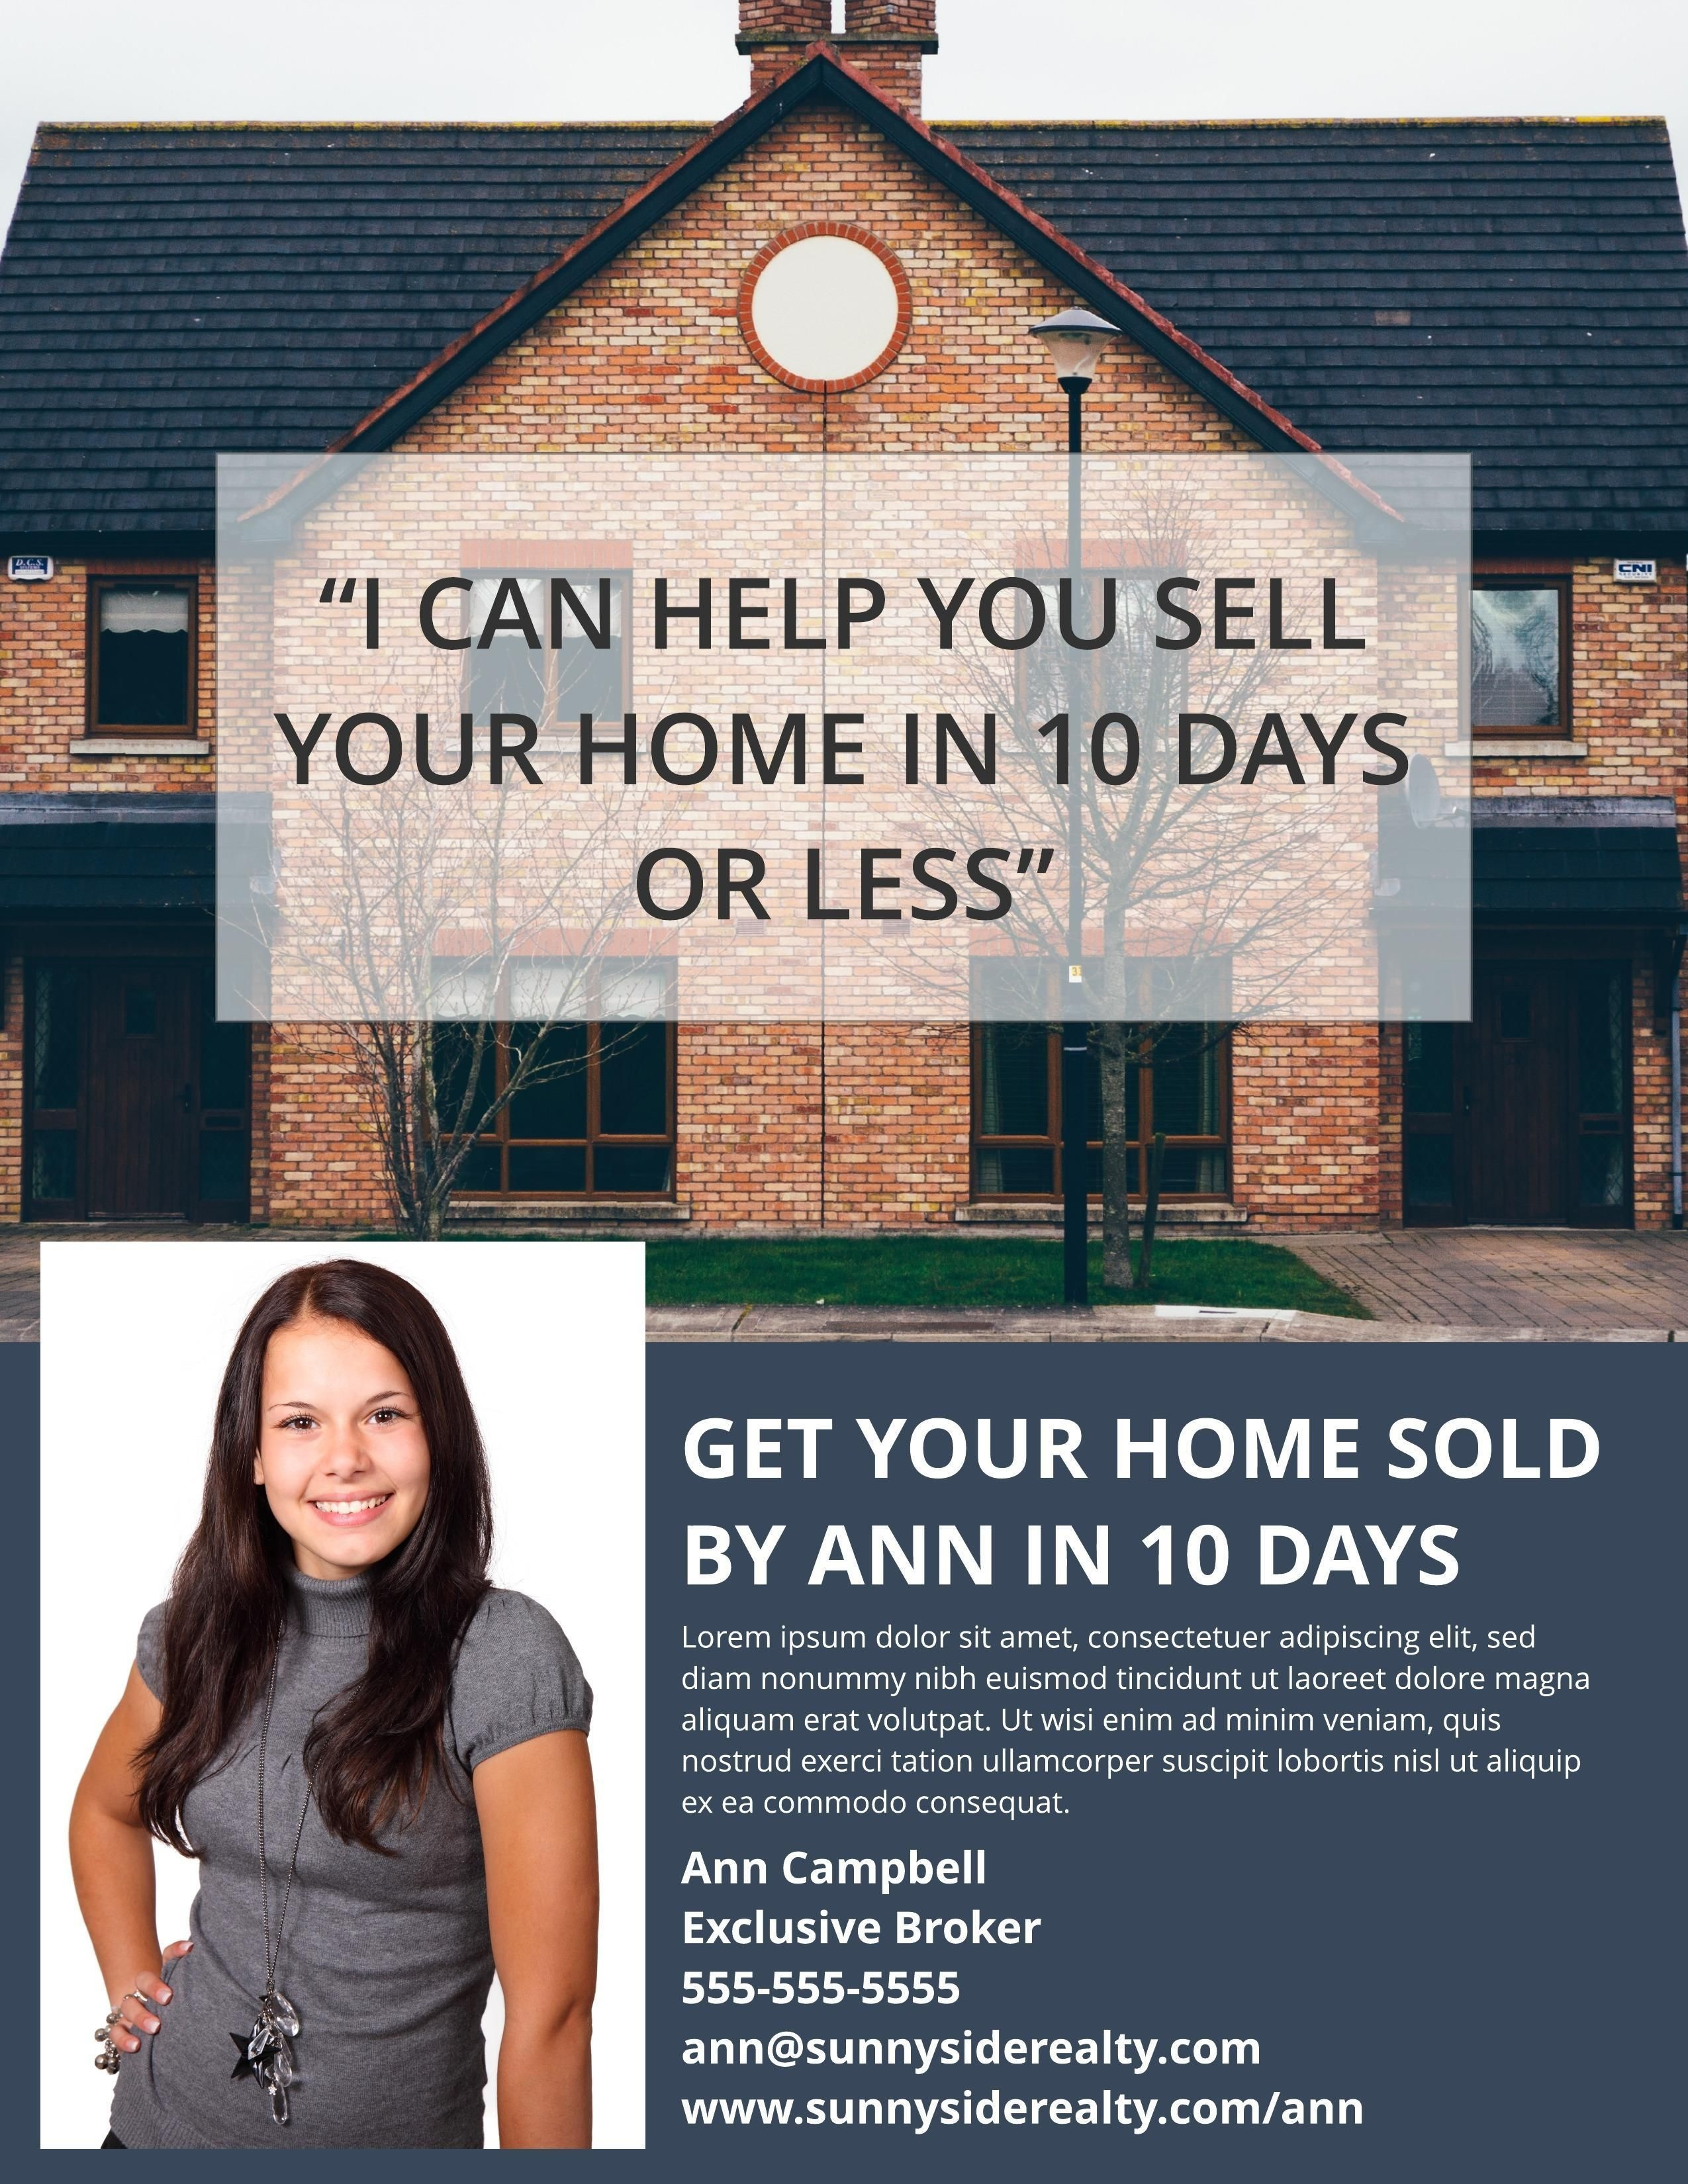 002 Impressive Real Estate Marketing Flyer Template Free Picture Full